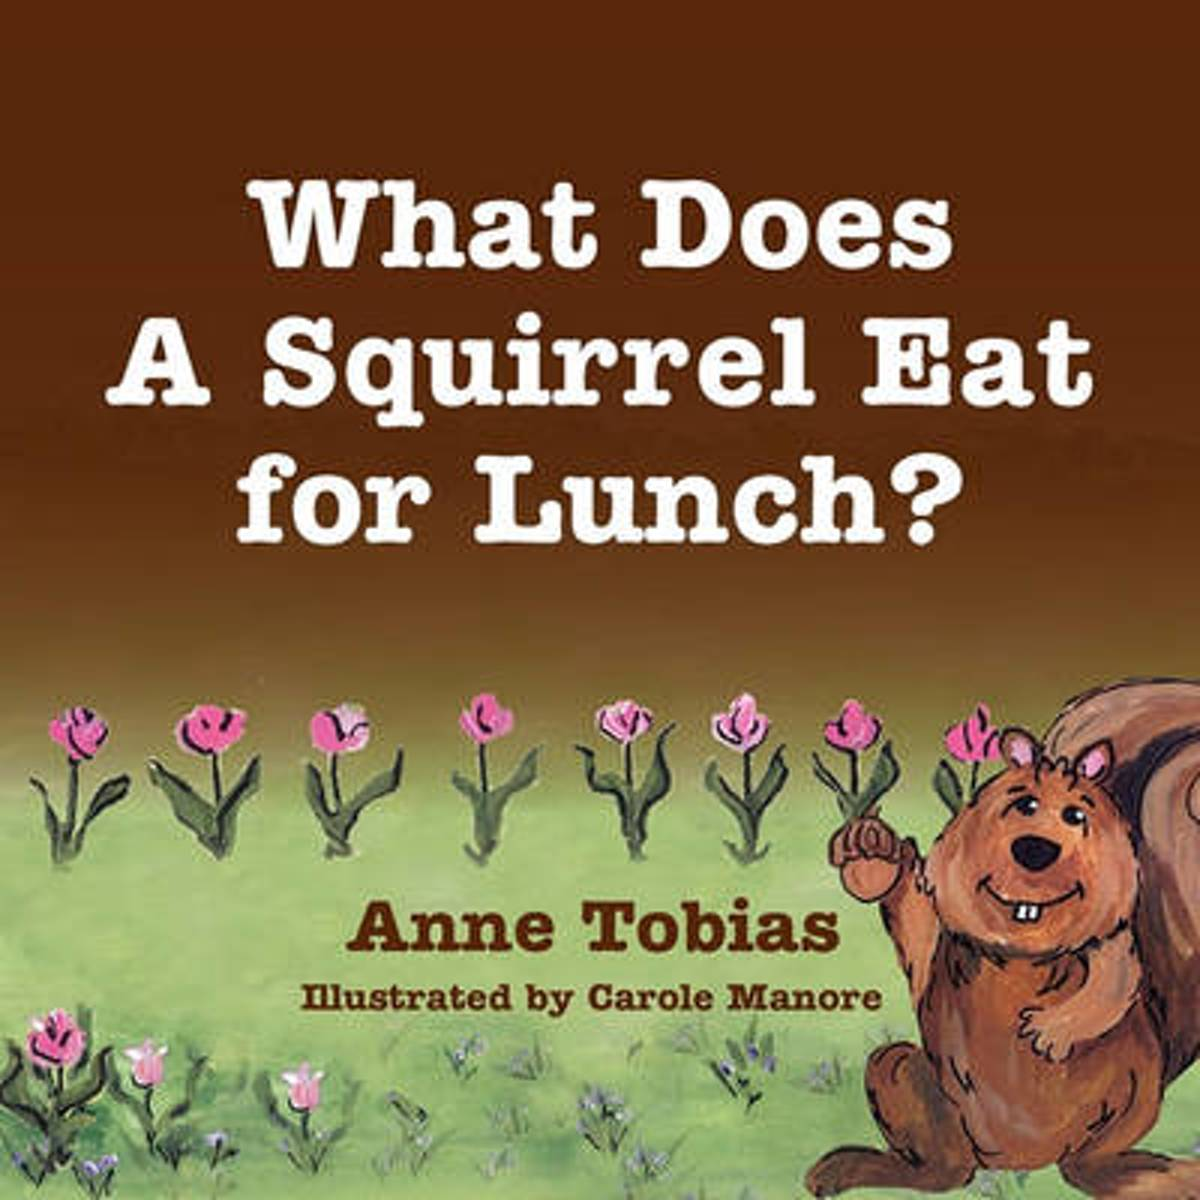 What Does a Squirrel Eat for Lunch?